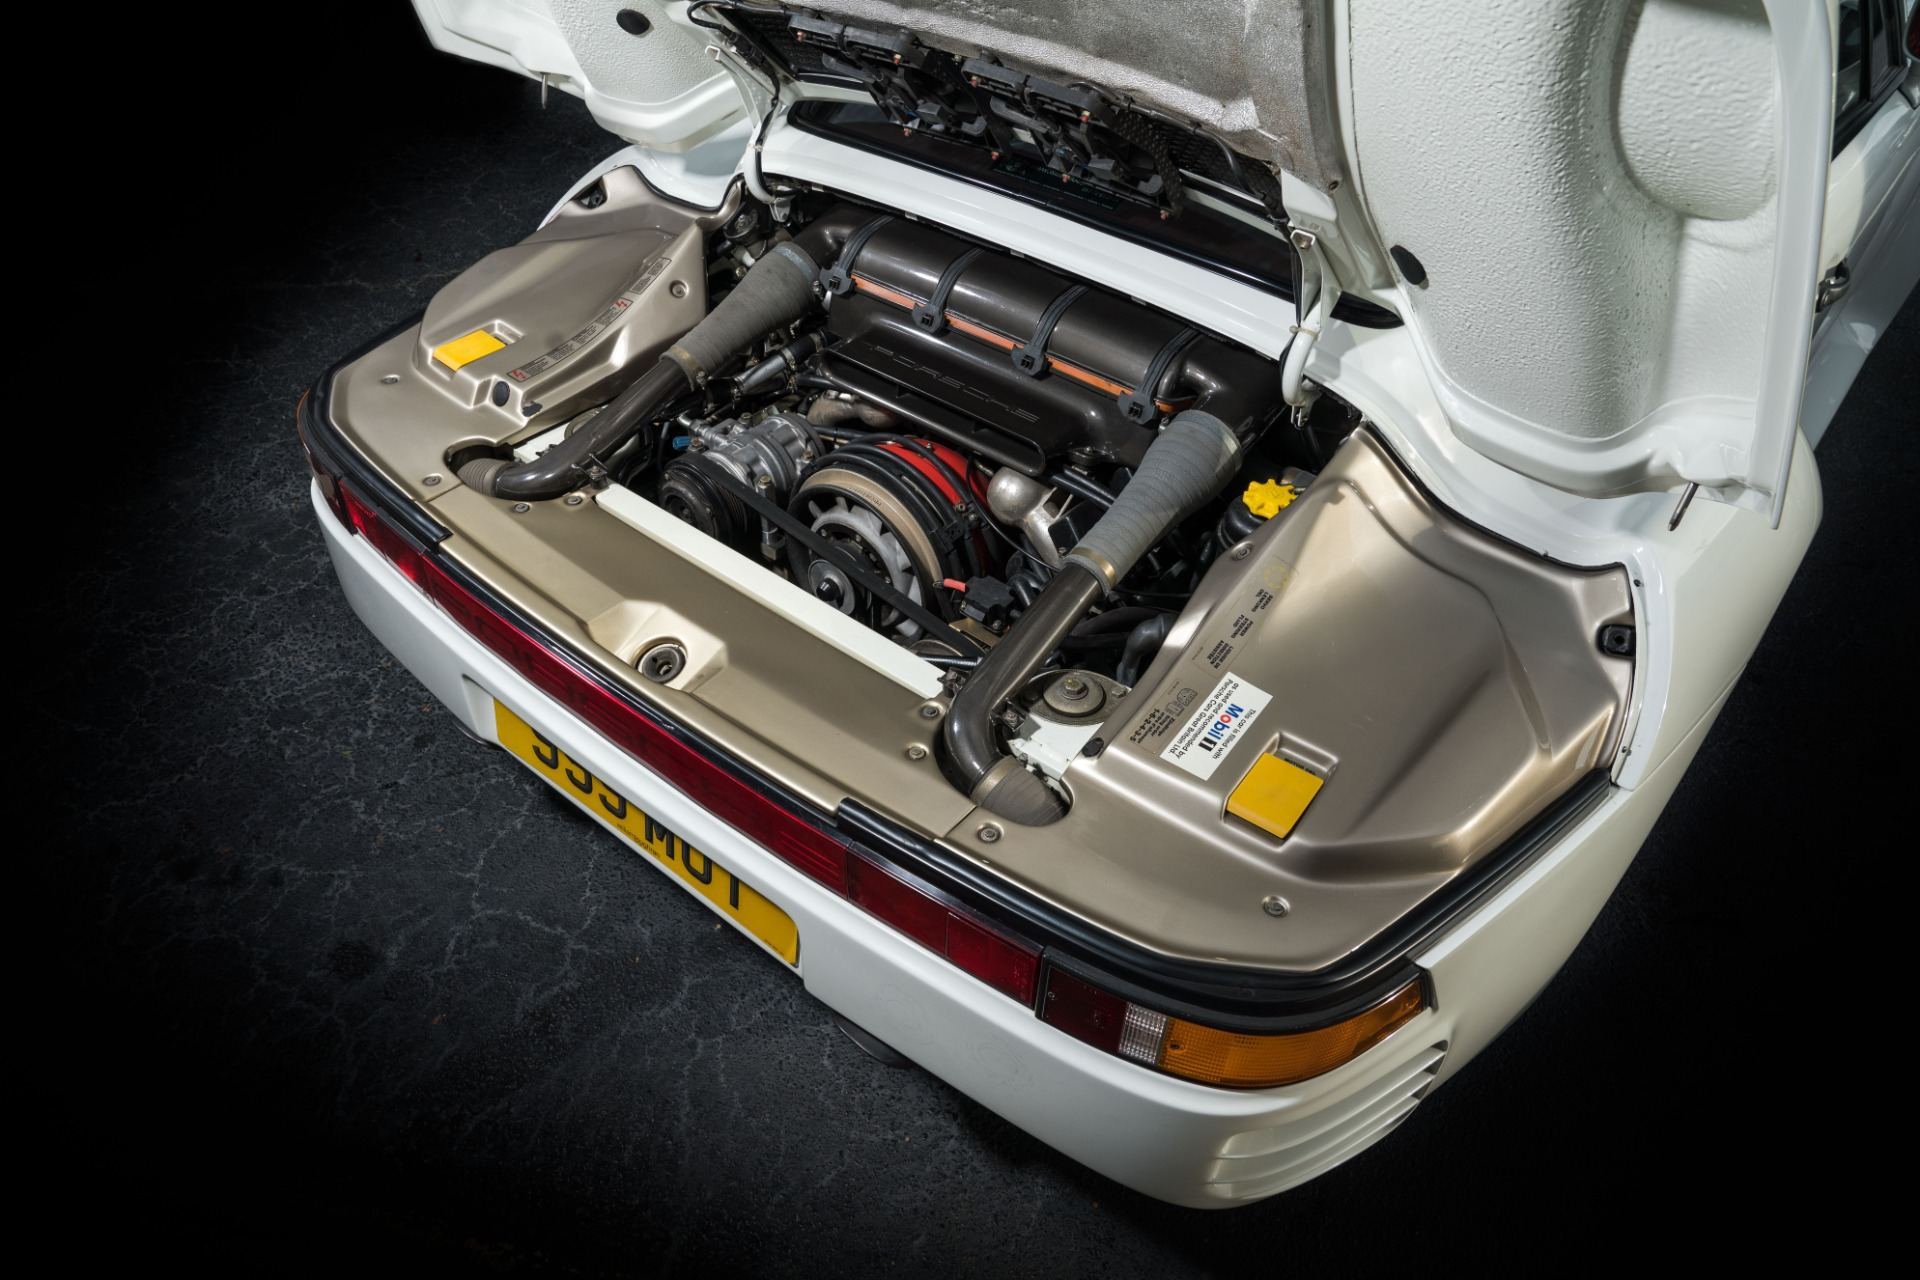 Used 1988 Porsche 959 KOMFORT COUPE / AWD / 6-SPEED MANUAL / ORIGINAL SUPERCAR for sale $1,399,999 at Formula Imports in Charlotte NC 28227 32